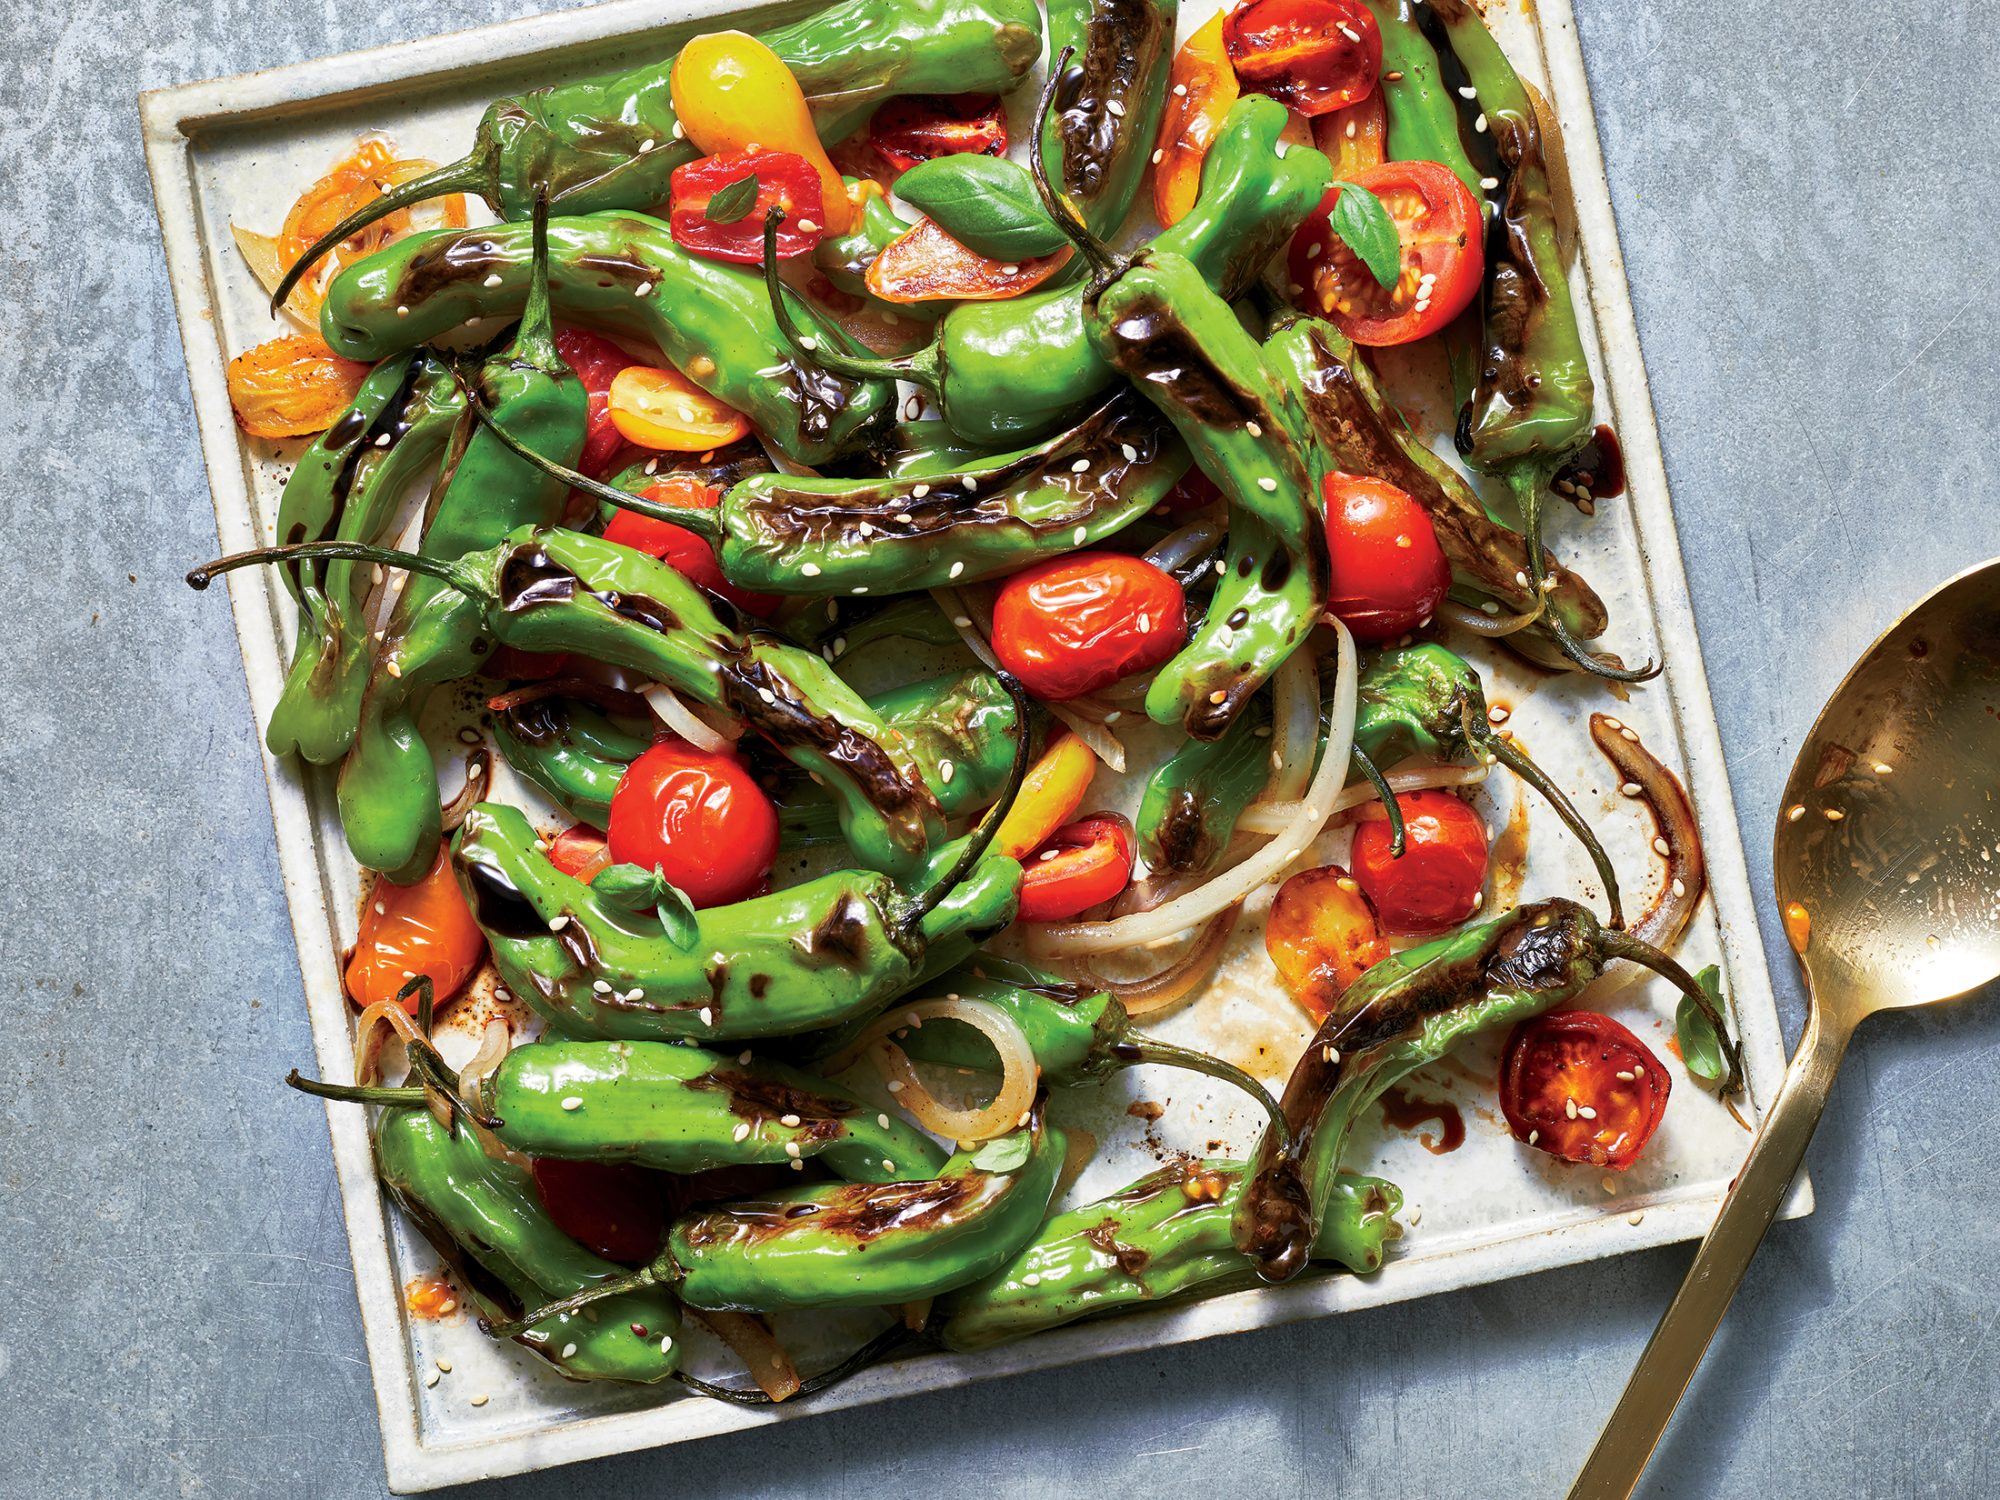 Blistered Peppers and Tomatoes